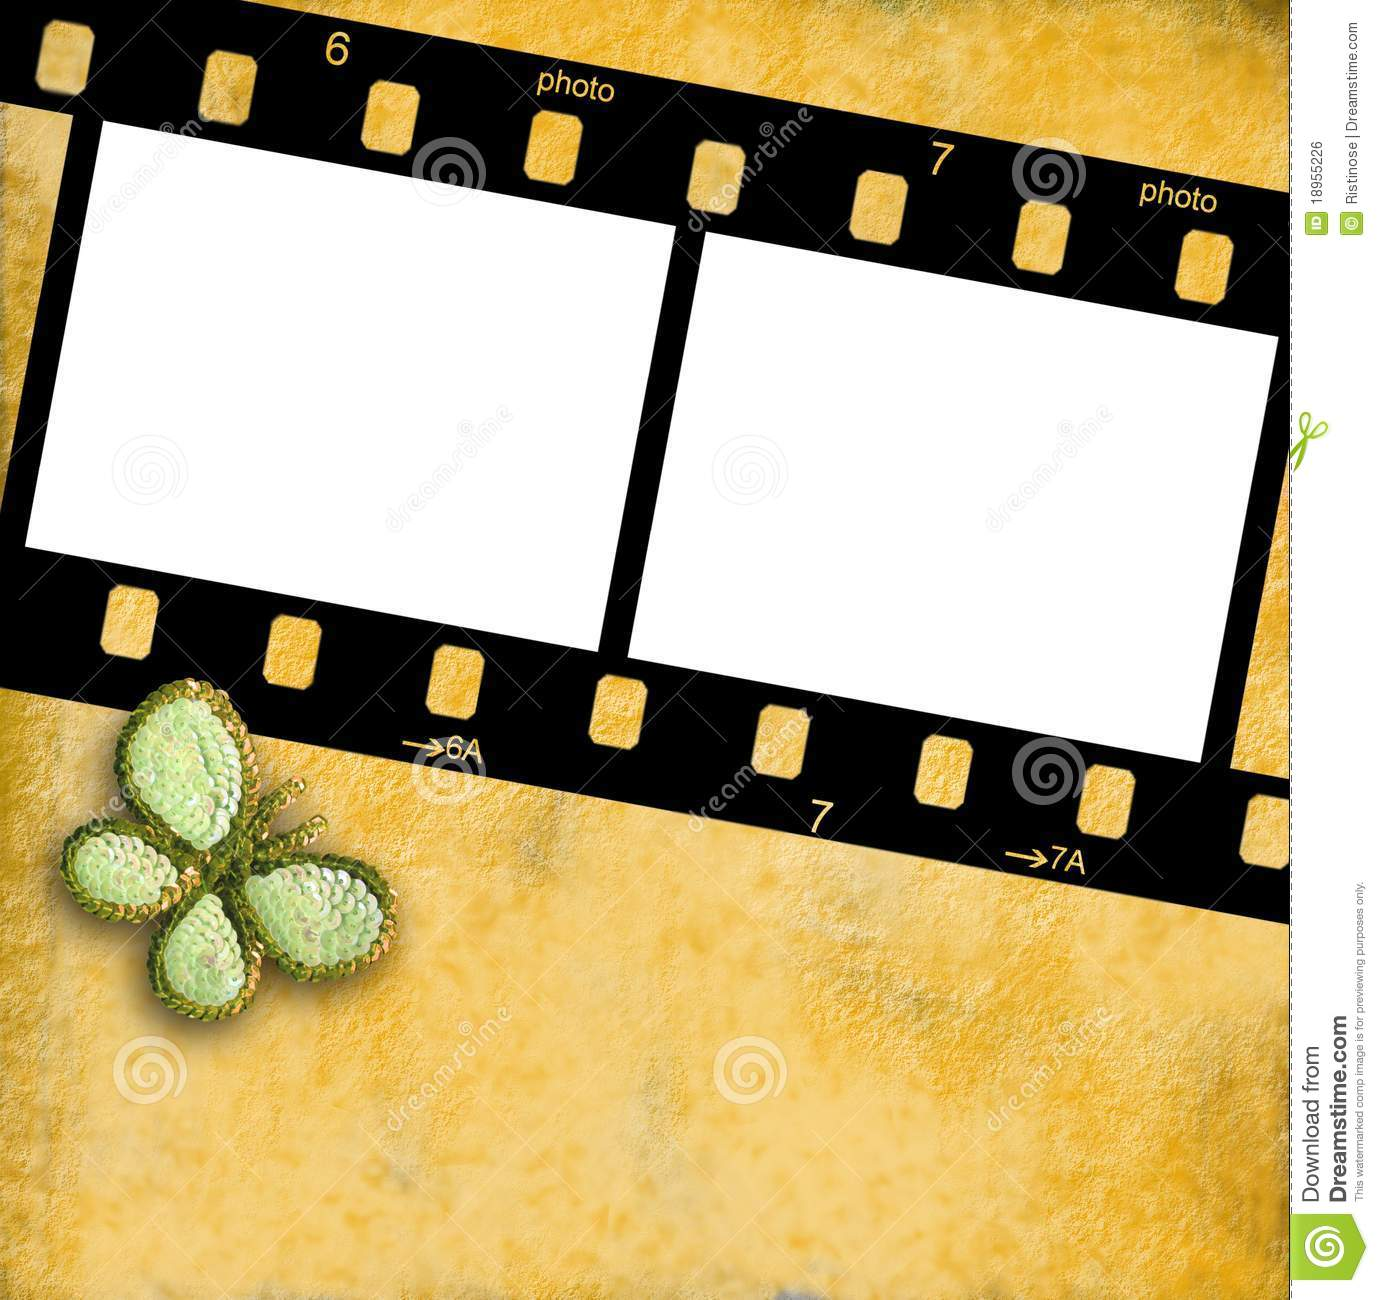 Attractive 35mm Film Frame For Two Photos Isolated Stock Photo - Image of  QH33